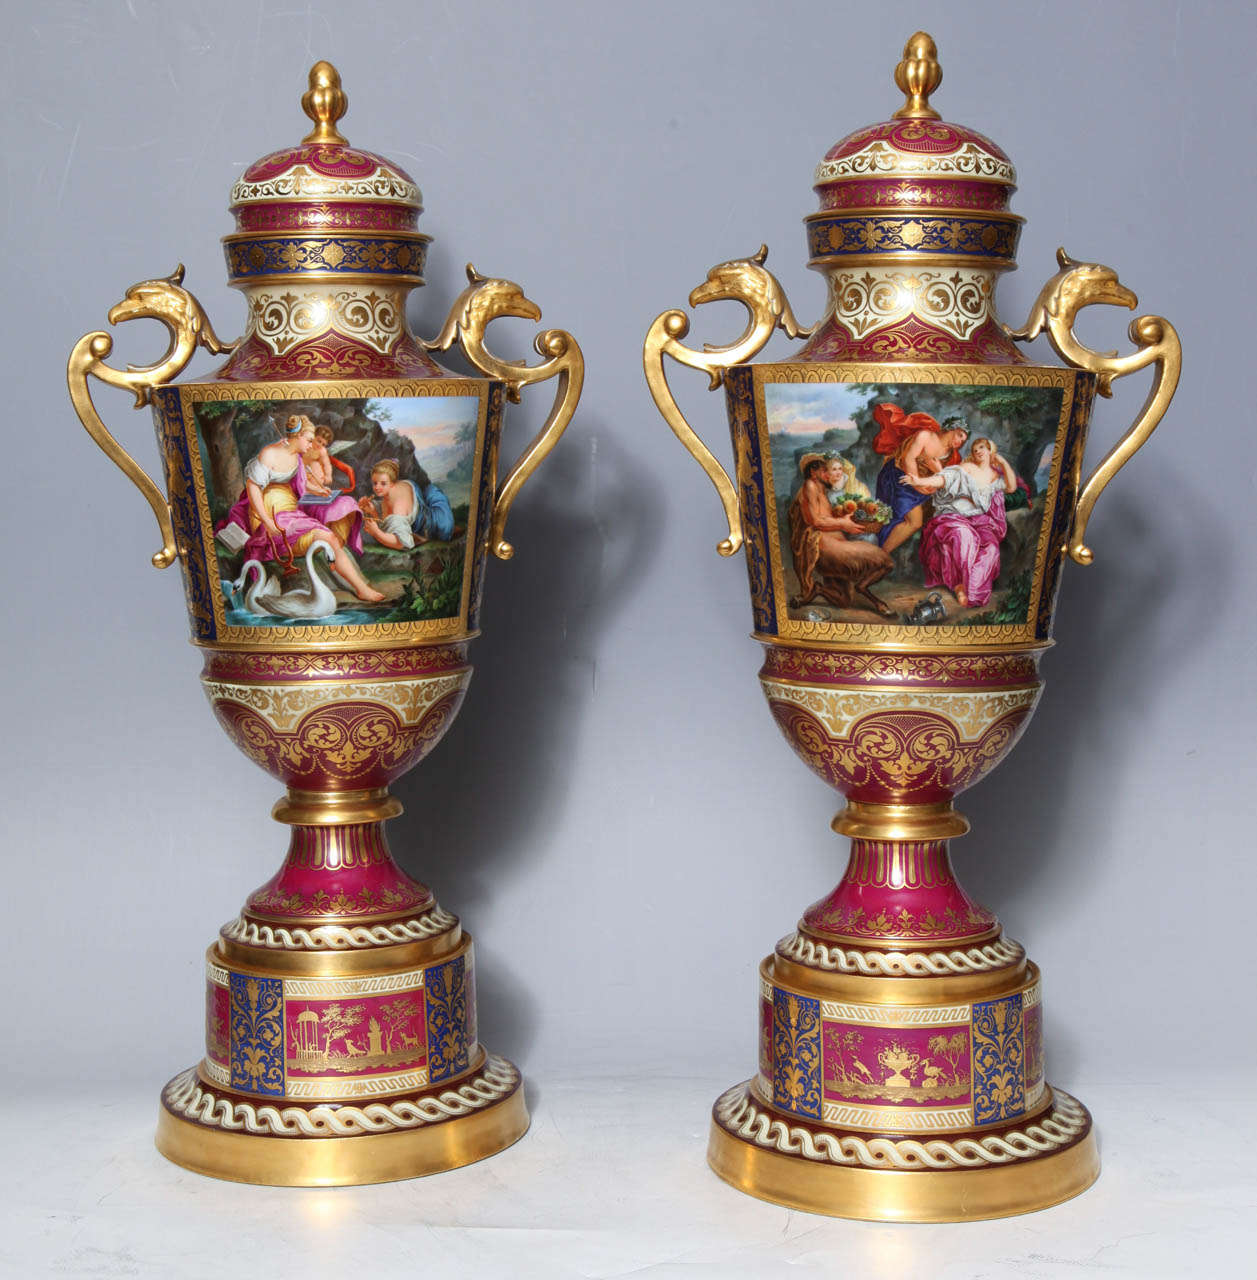 A magnificent pair of 19th century royal Vienna covered urns on original stands with double eagle handles depicting neoclassical lovers and cupid. These ornate urns show scenes populated by angelic cupids in beautifully deep landscapes surrounding